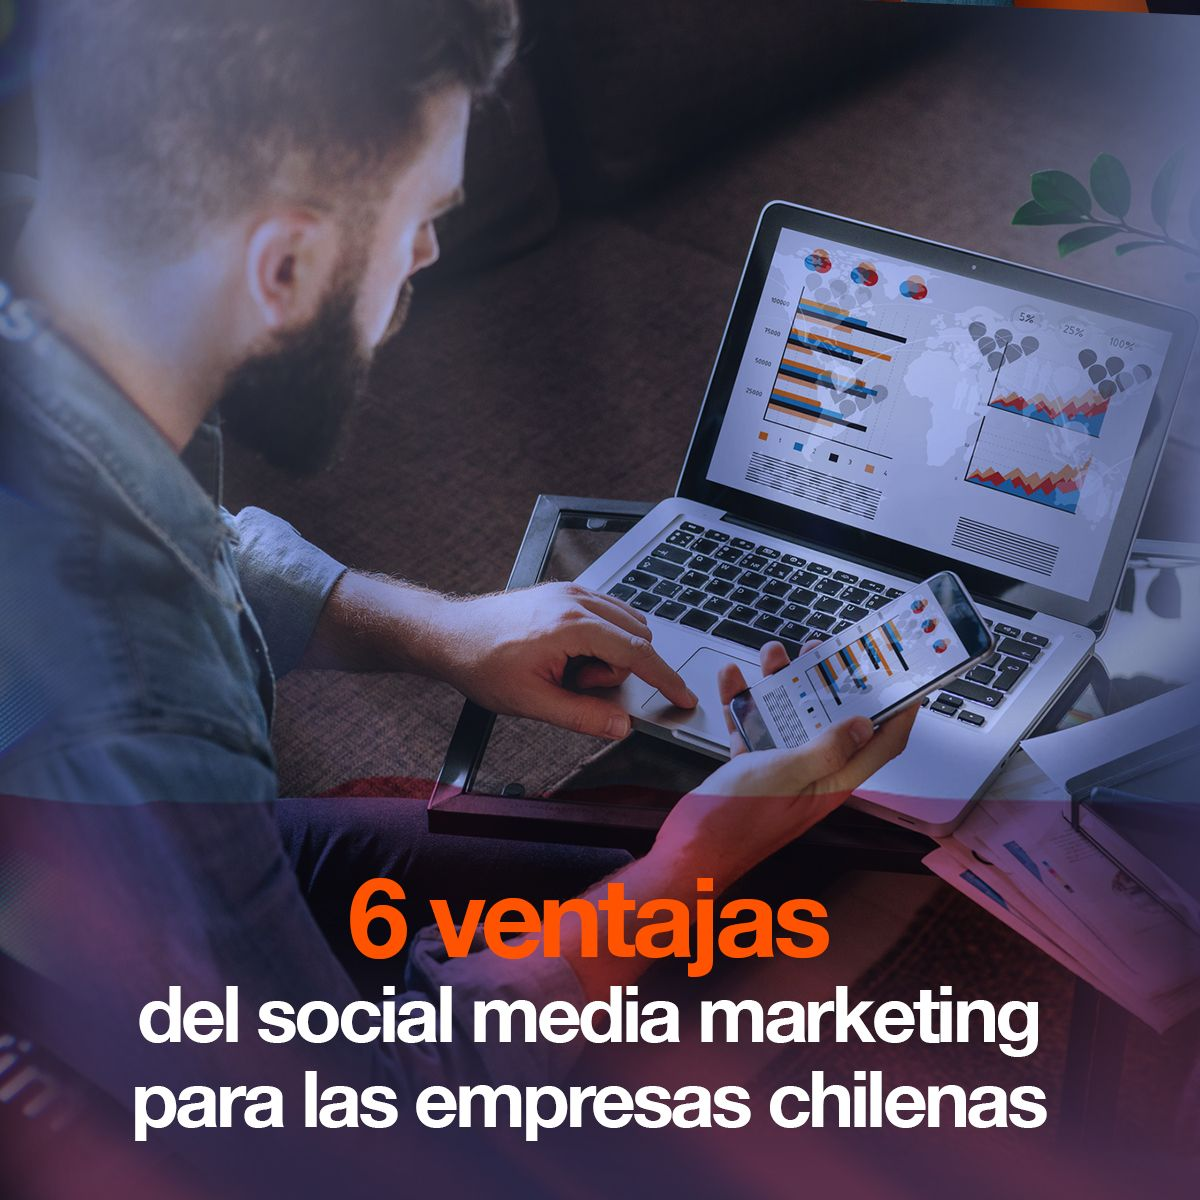 6 ventajas del social media marketing para las empresas chilenas